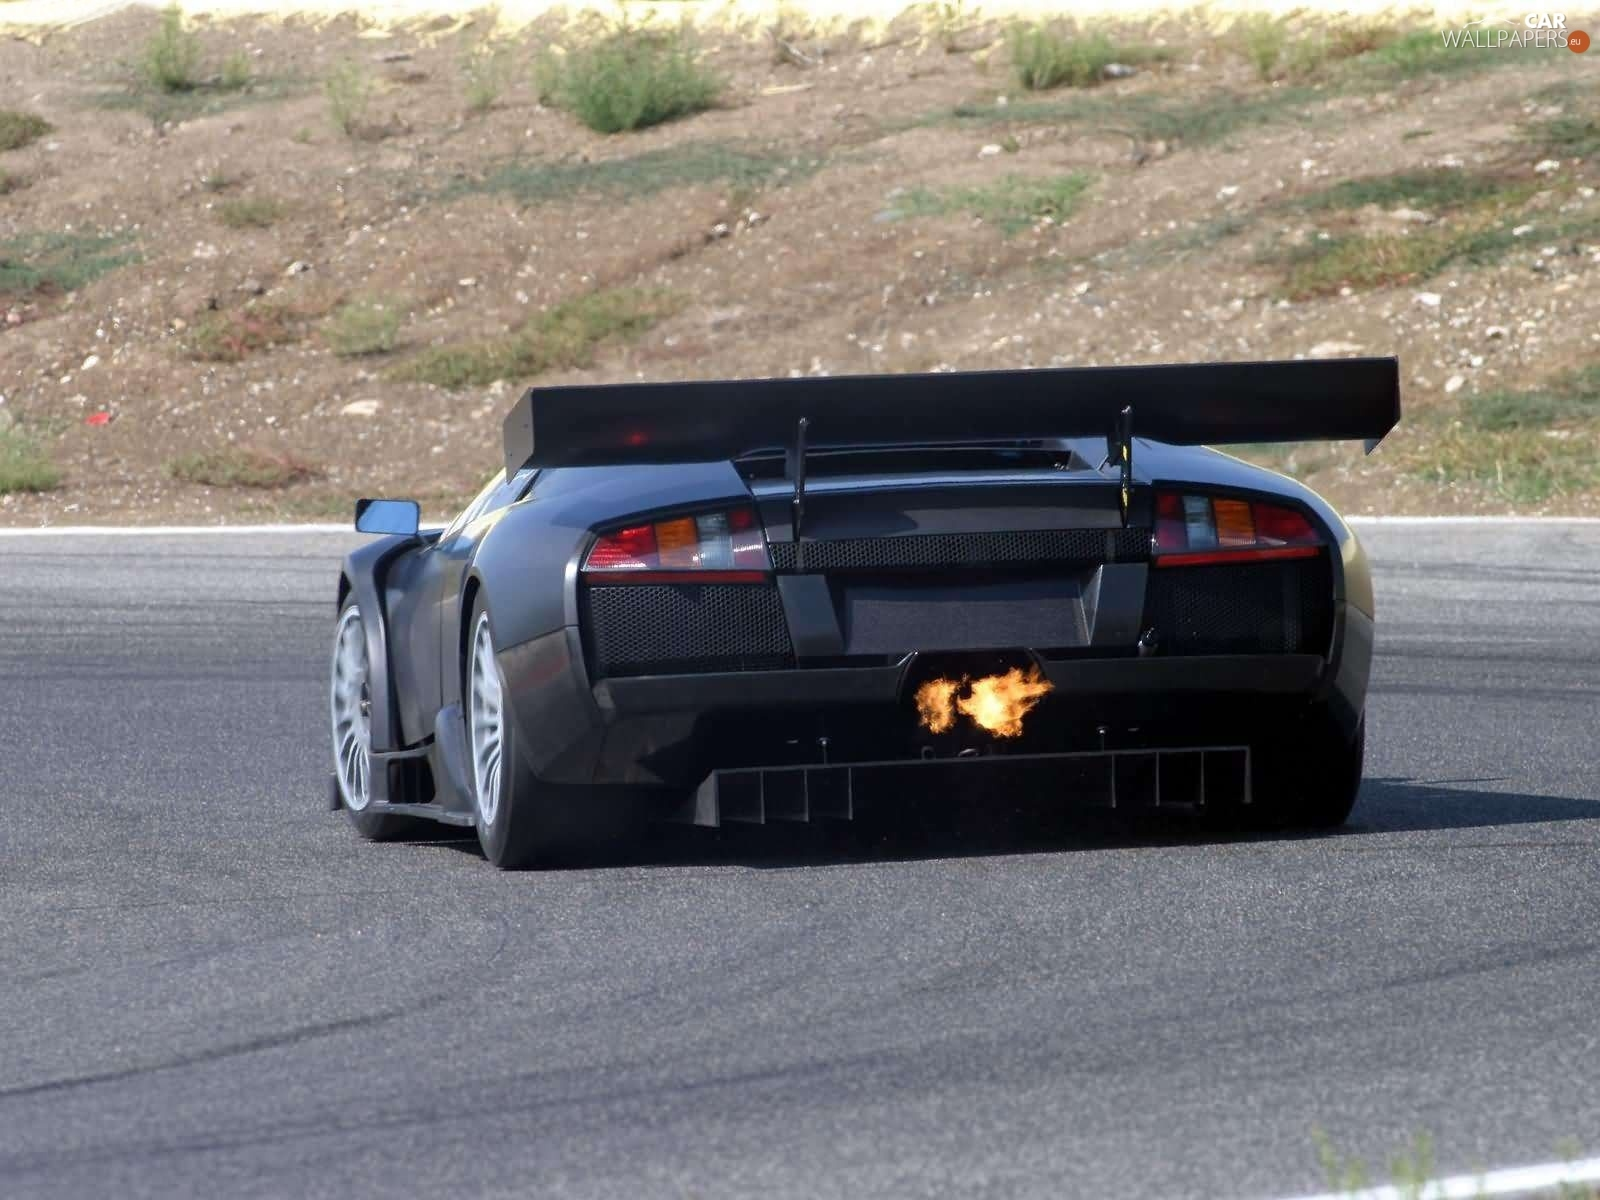 Lamborghini Murcielago Tube Exhaust Big Fire Cars Wallpapers